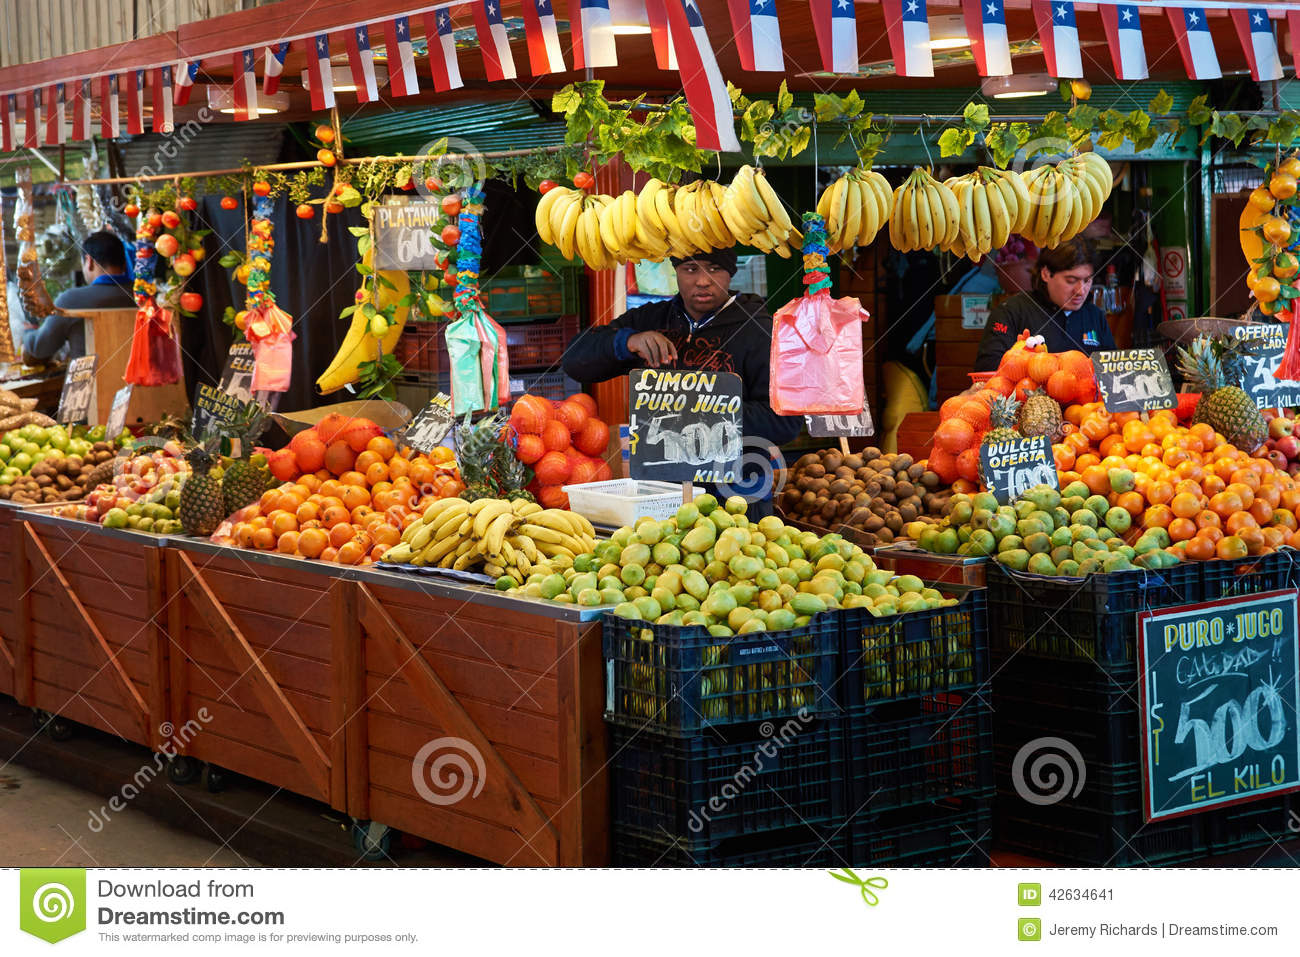 hight resolution of fresh fruit and vegetables for sale in the historic central market la vega in santiago capital of chile